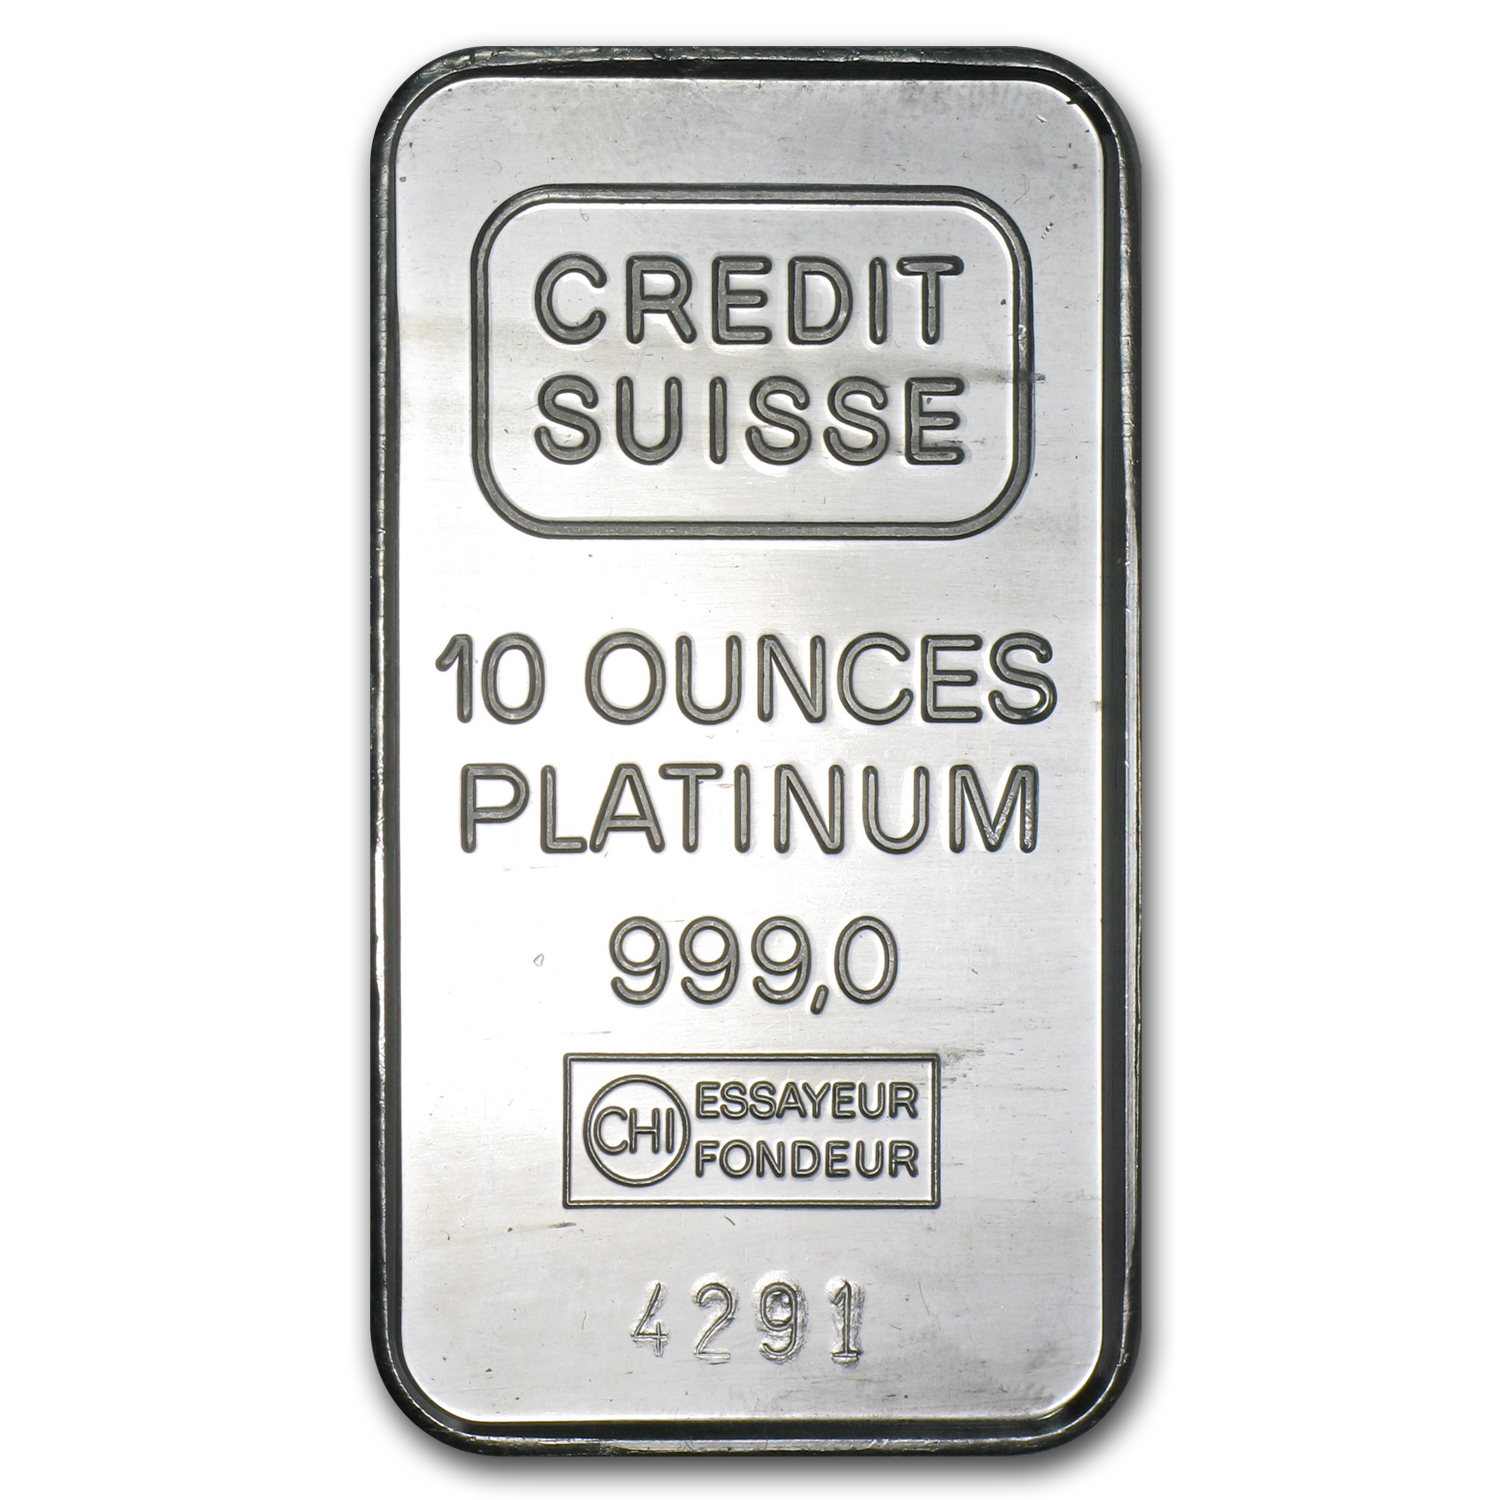 10 oz Credit Suisse Platinum Bar (Vintage) .999+ Fine